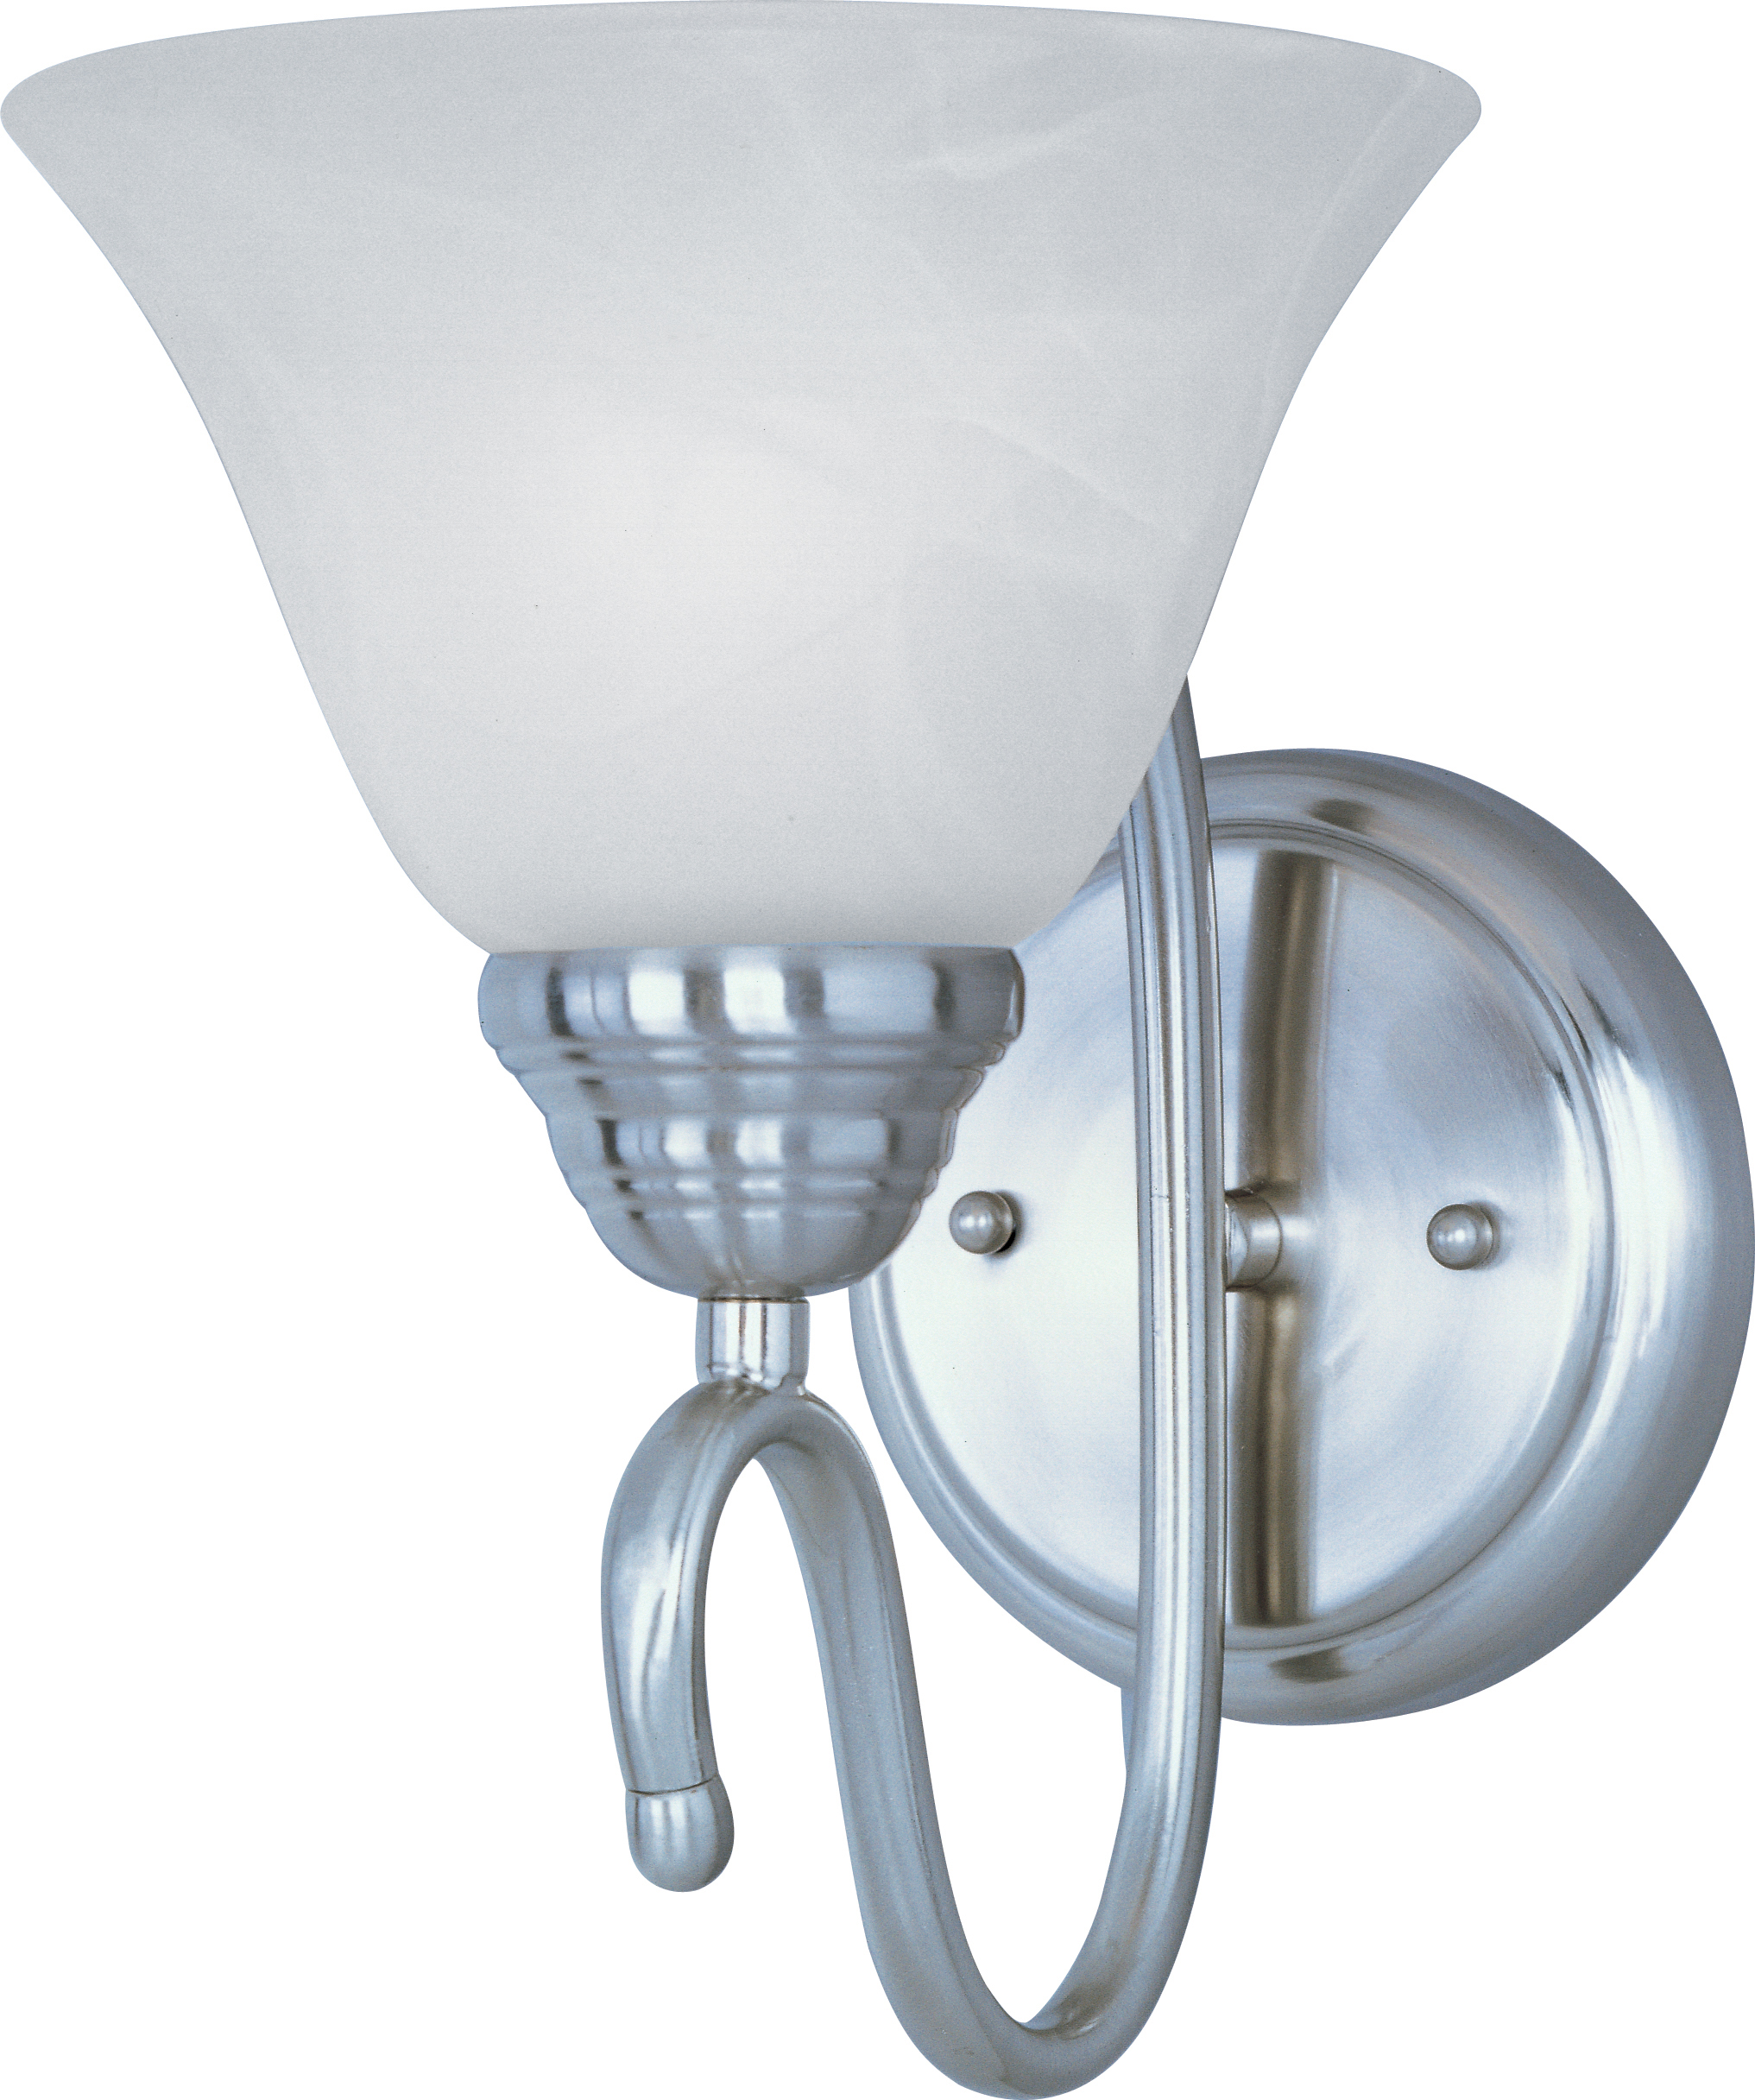 Newport 1-Light Wall Sconce - Wall Sconce - Maxim Lighting on Wall Sconce Replacement Parts id=75553